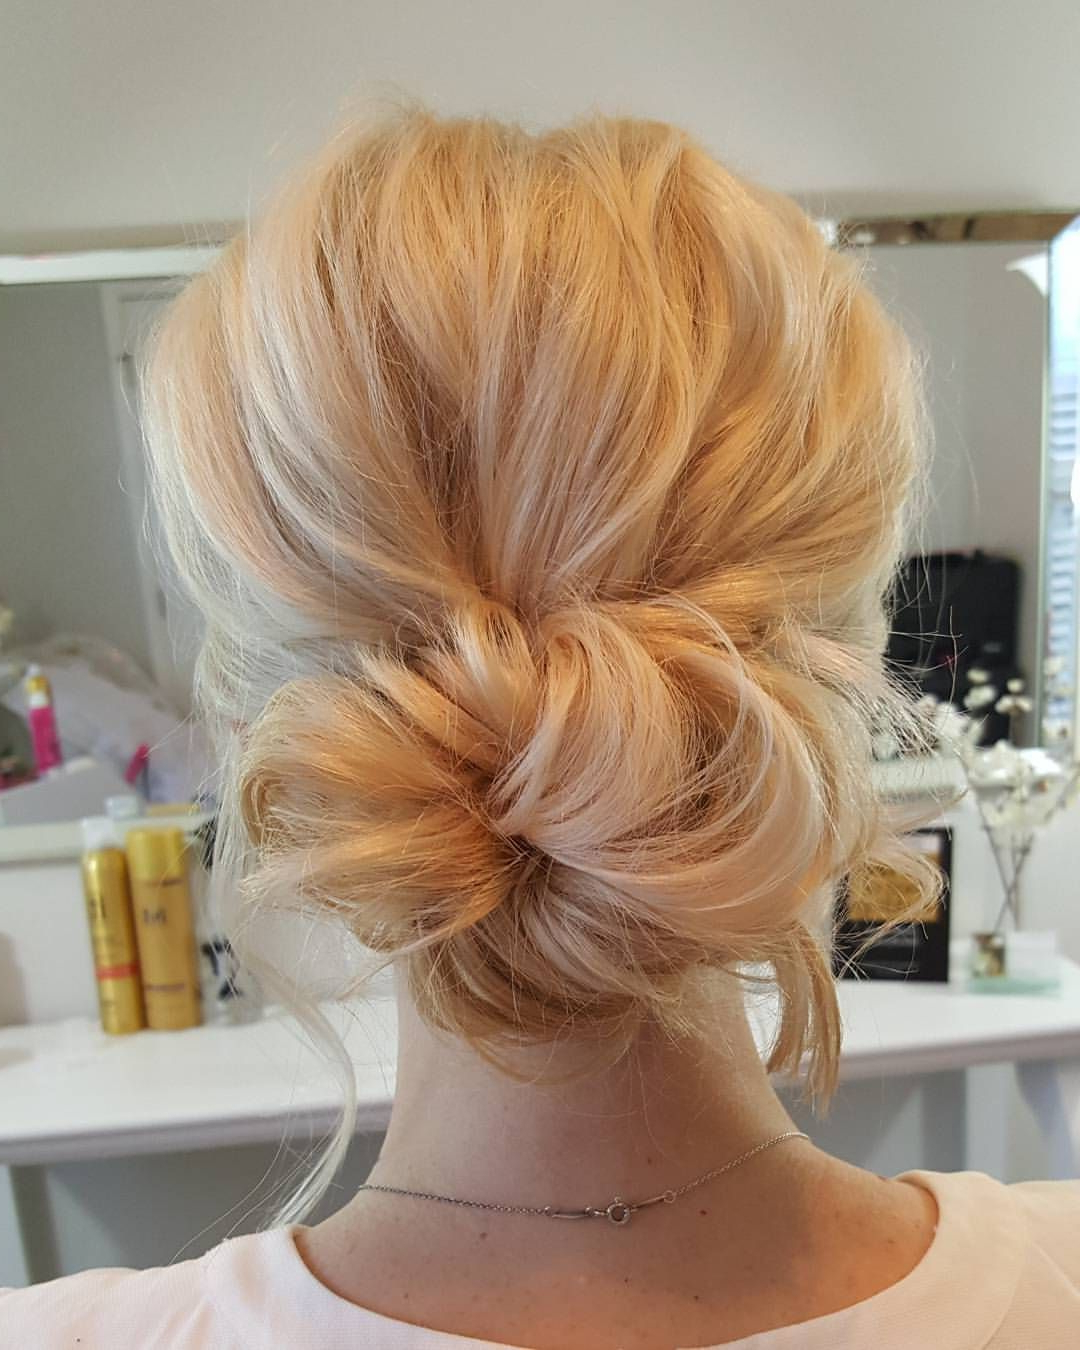 Trendy Wedding Low Bun Bridal Hairstyles Intended For Pinmegan Maccaughey On Hair For Weddings (View 16 of 20)